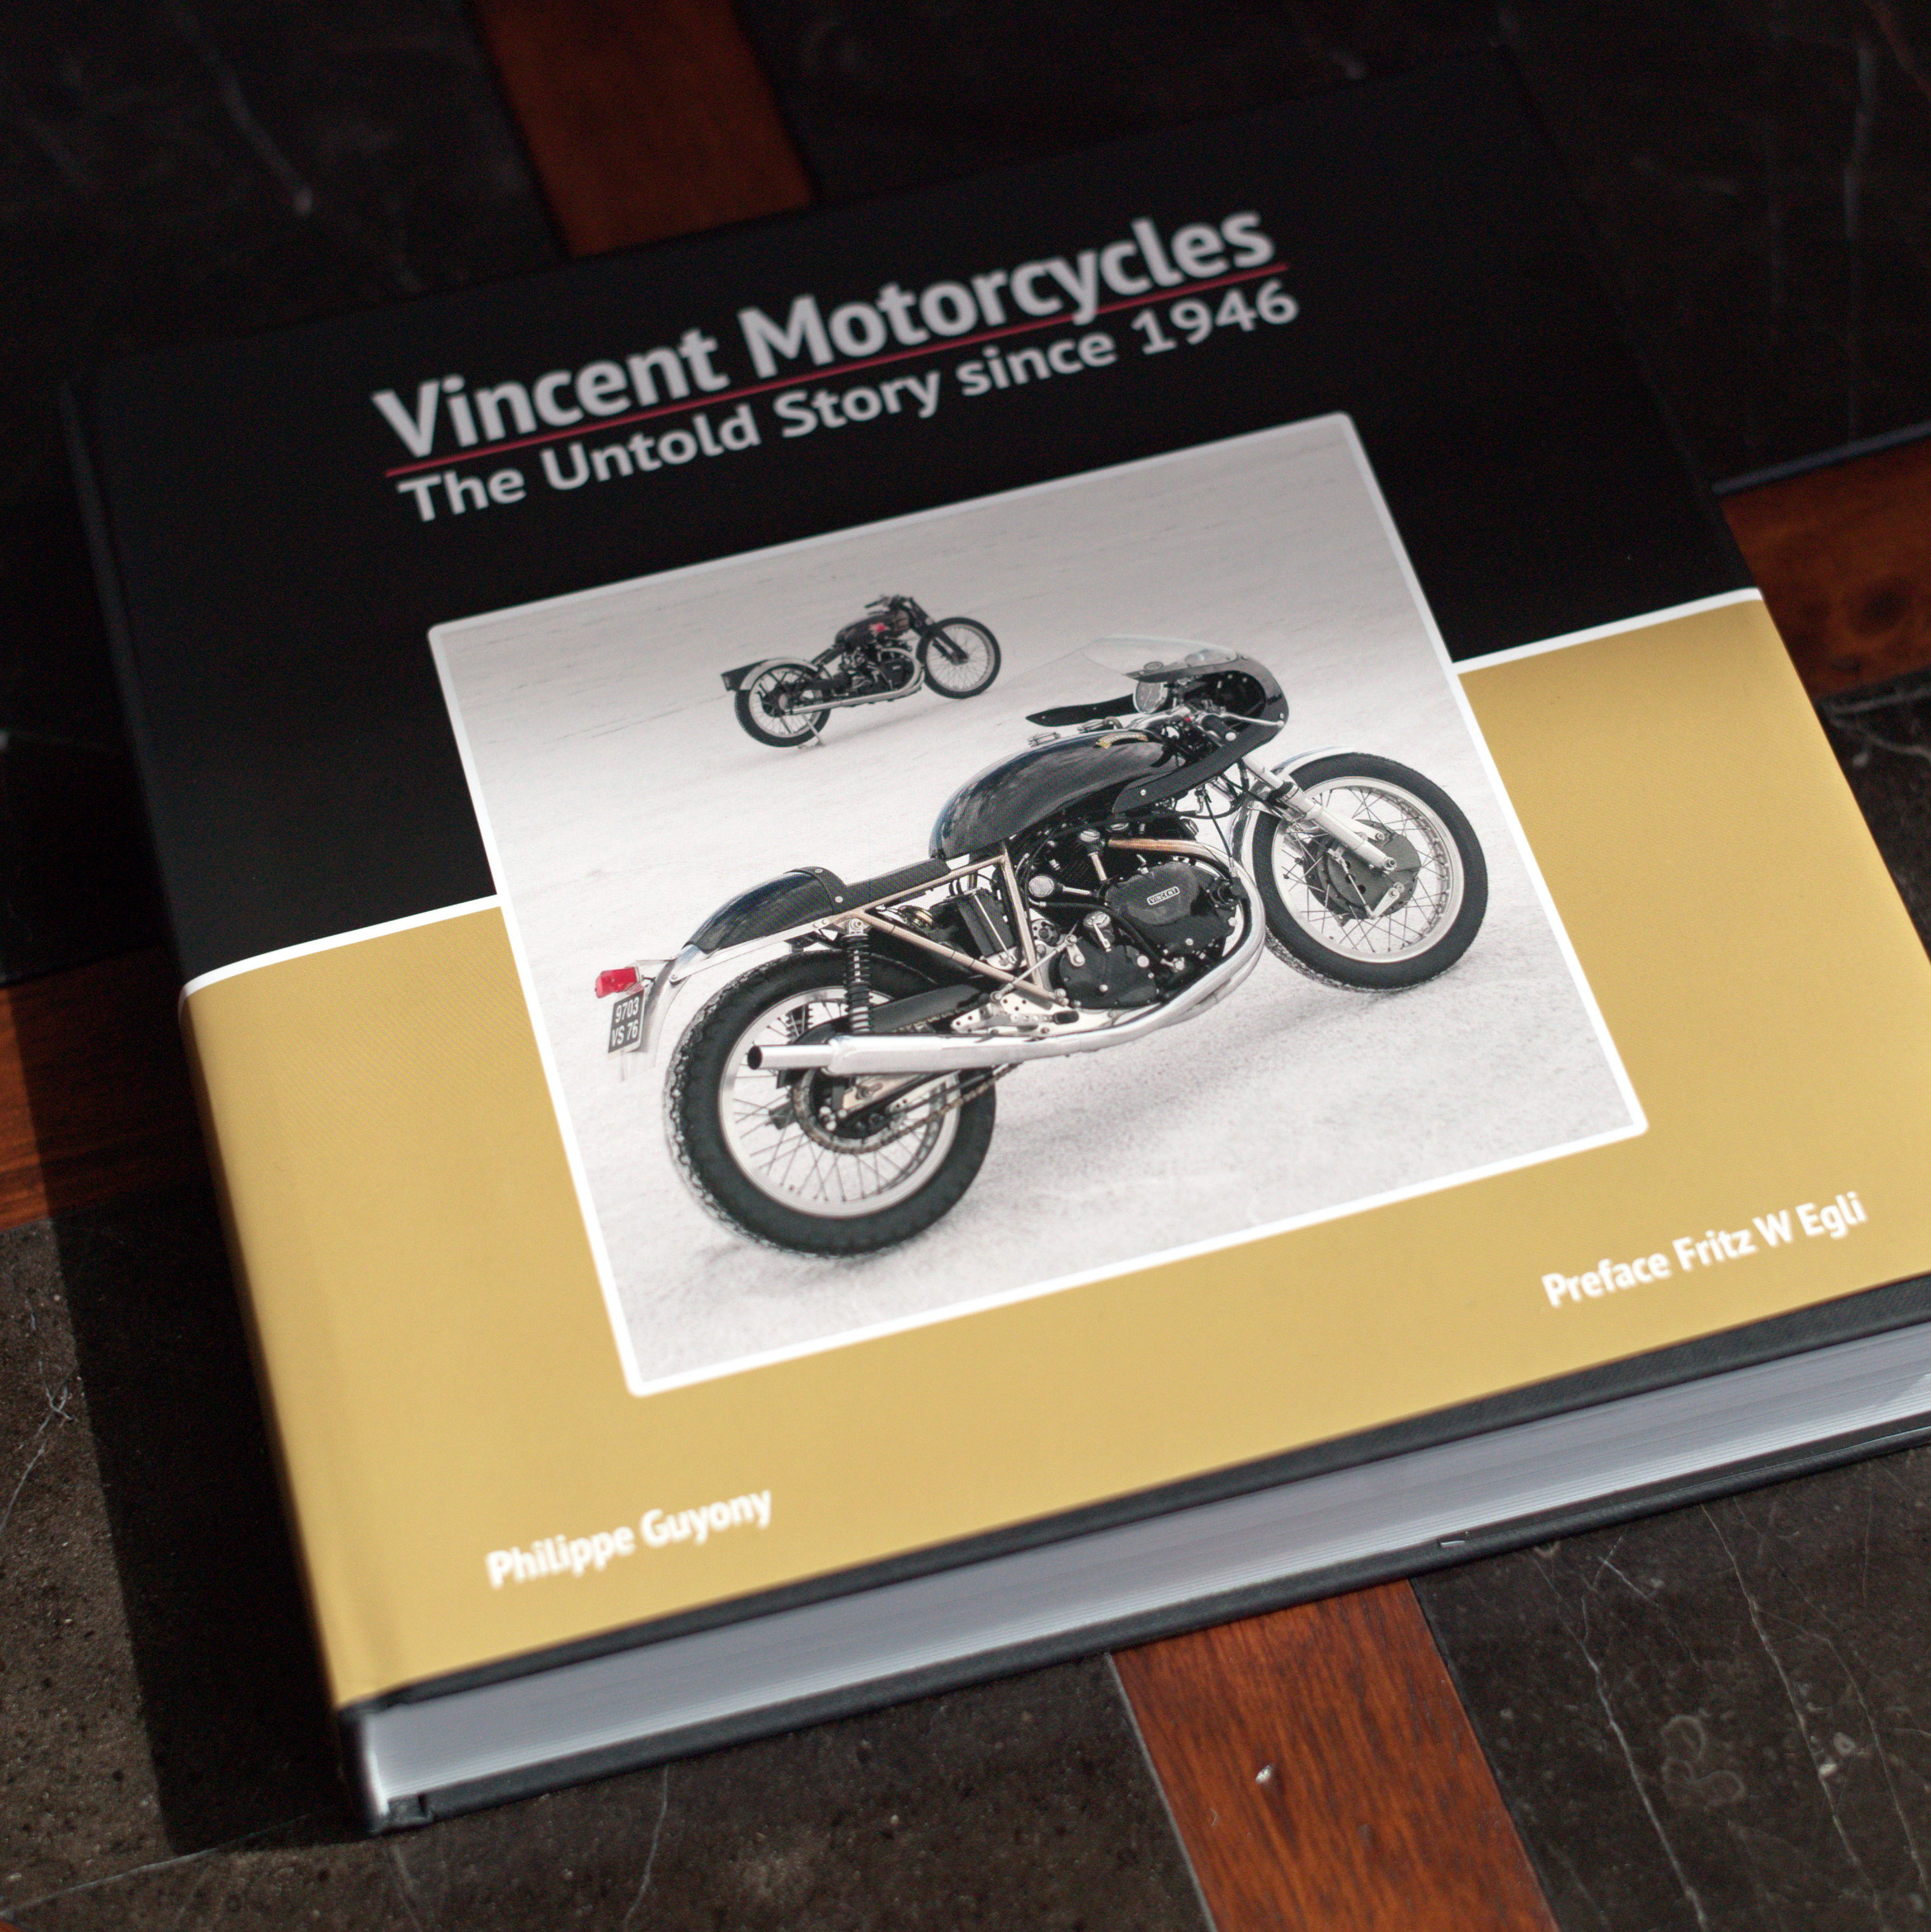 Vincent motorcycle brochure 1952 front cover - Philippe Guyony